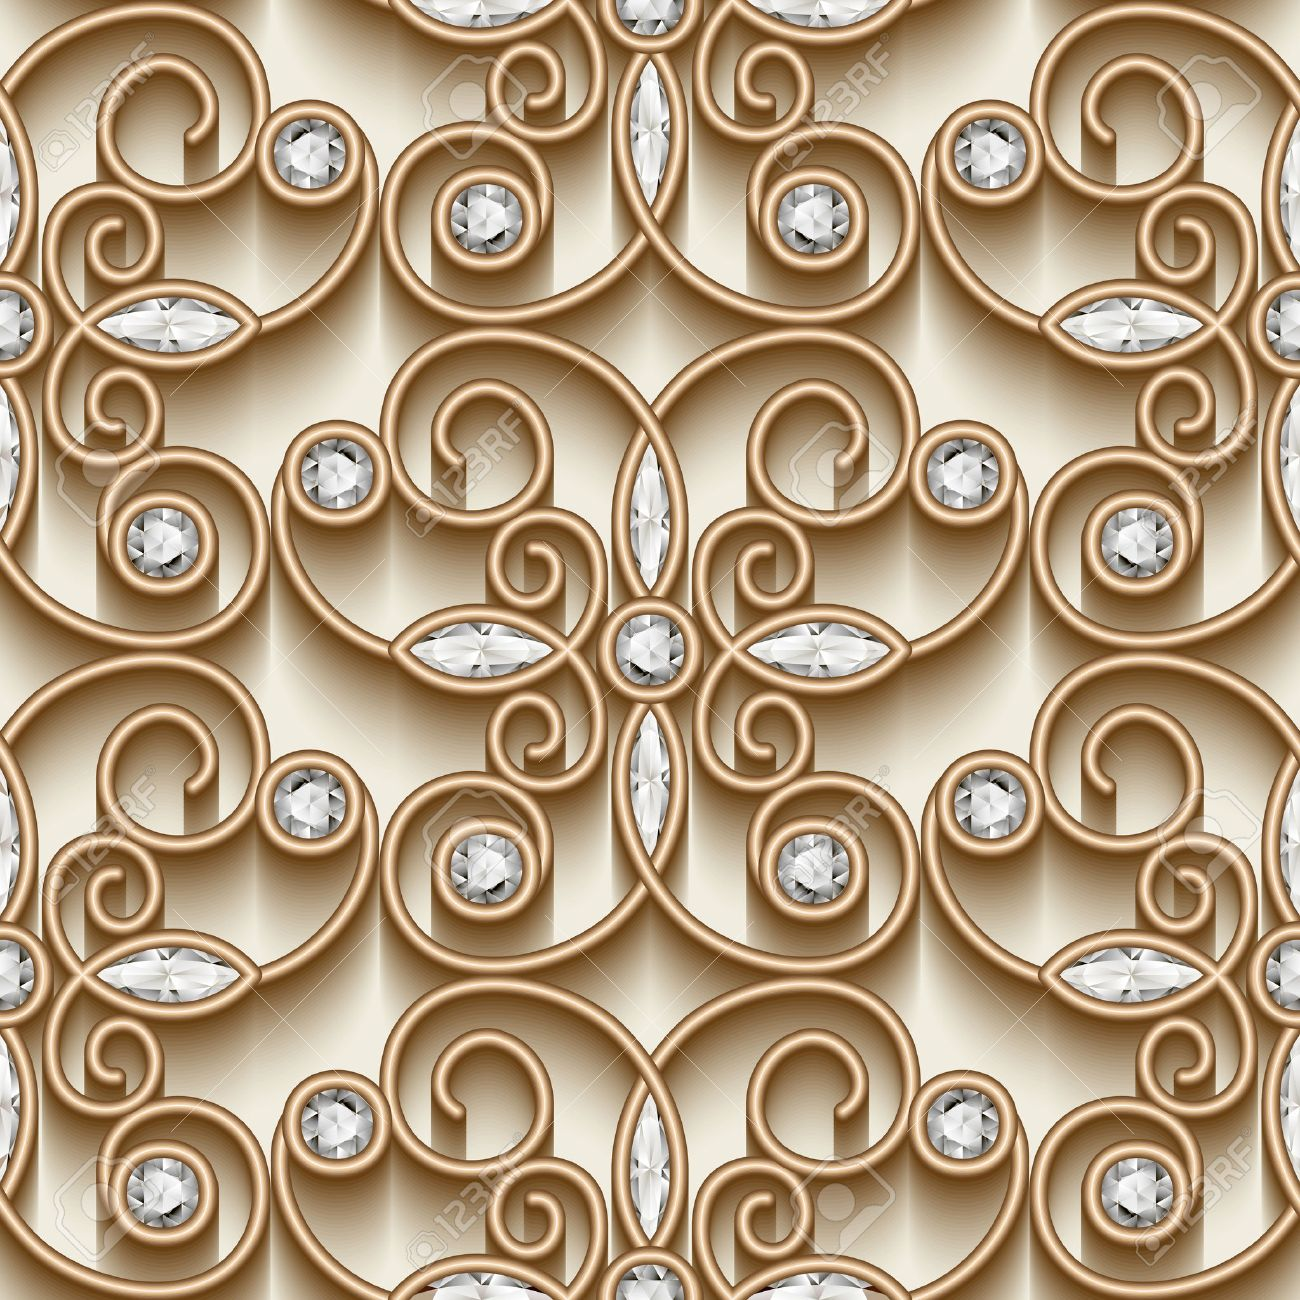 Vintage gold ornament, jewelry seamless pattern with diamonds - 44166440